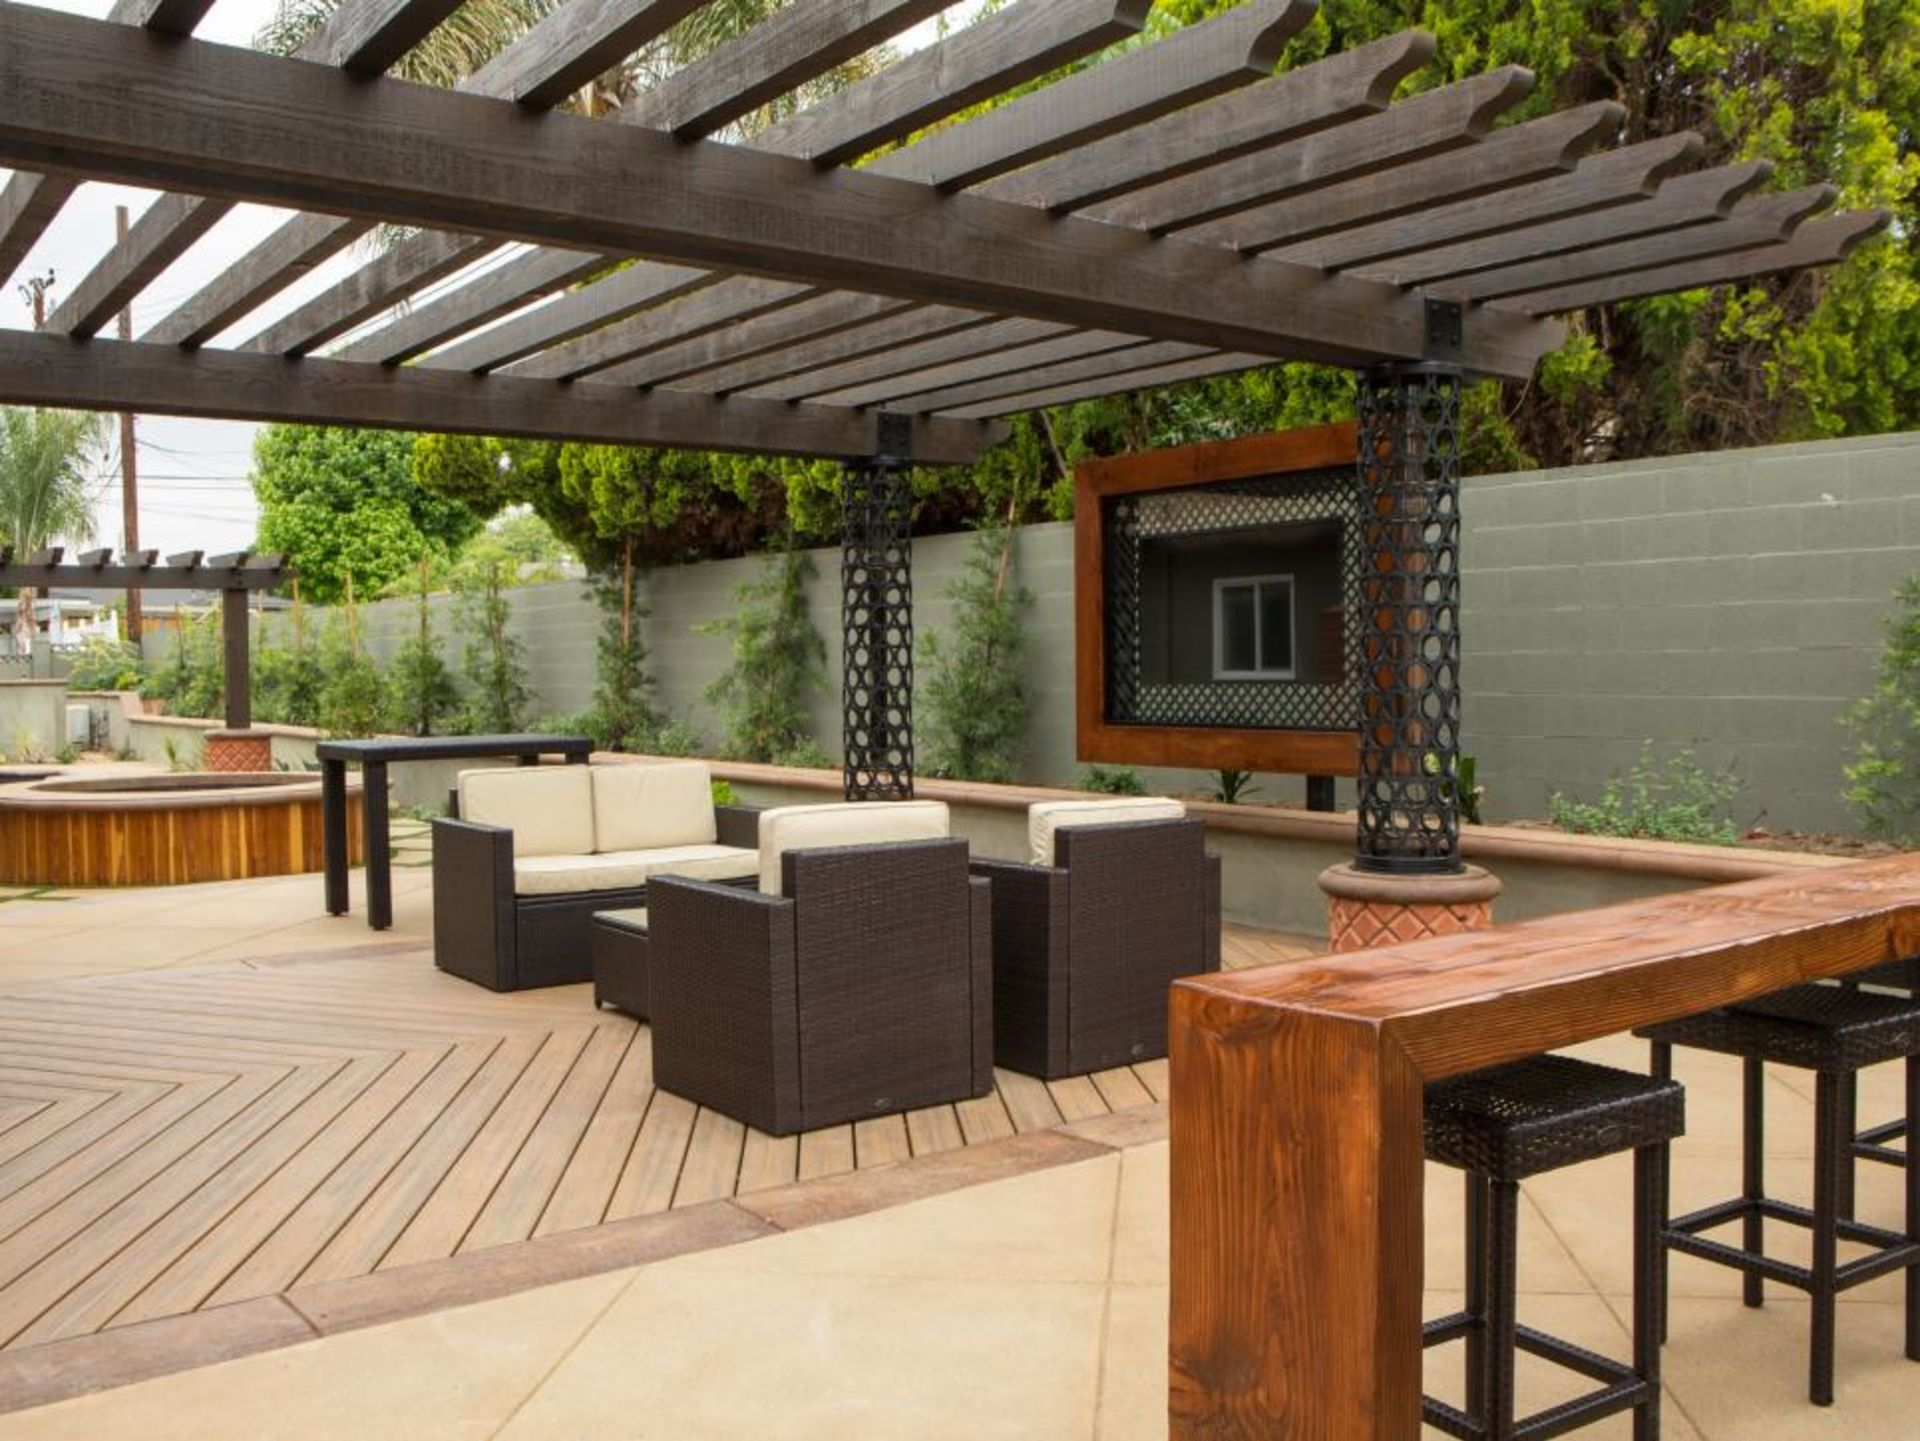 Ready for a Backyard Make-Over?